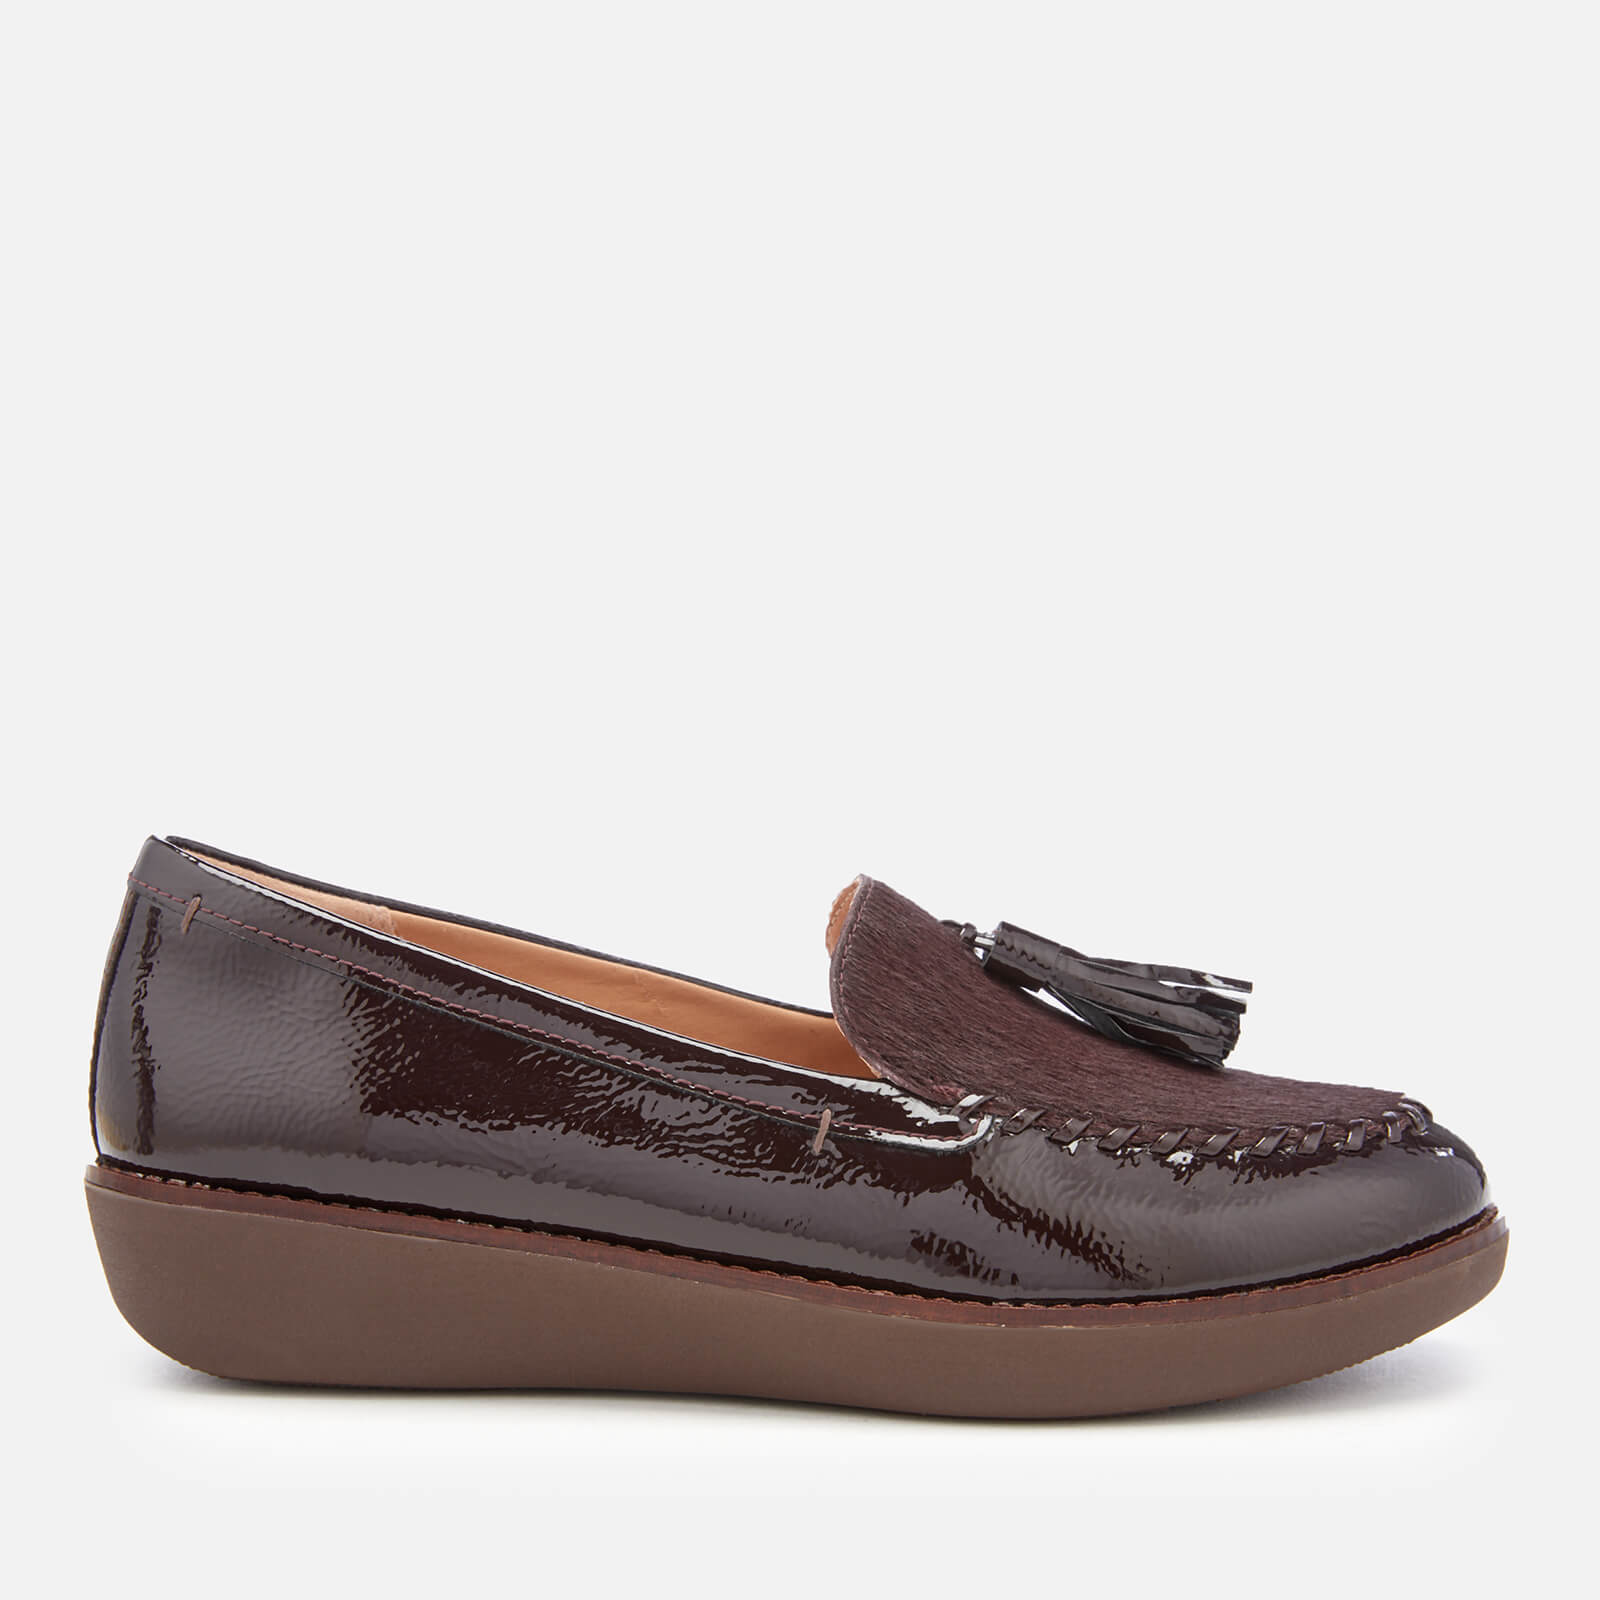 799f19e77ad FitFlop Women s Paige Moccasin Loafers - Berry